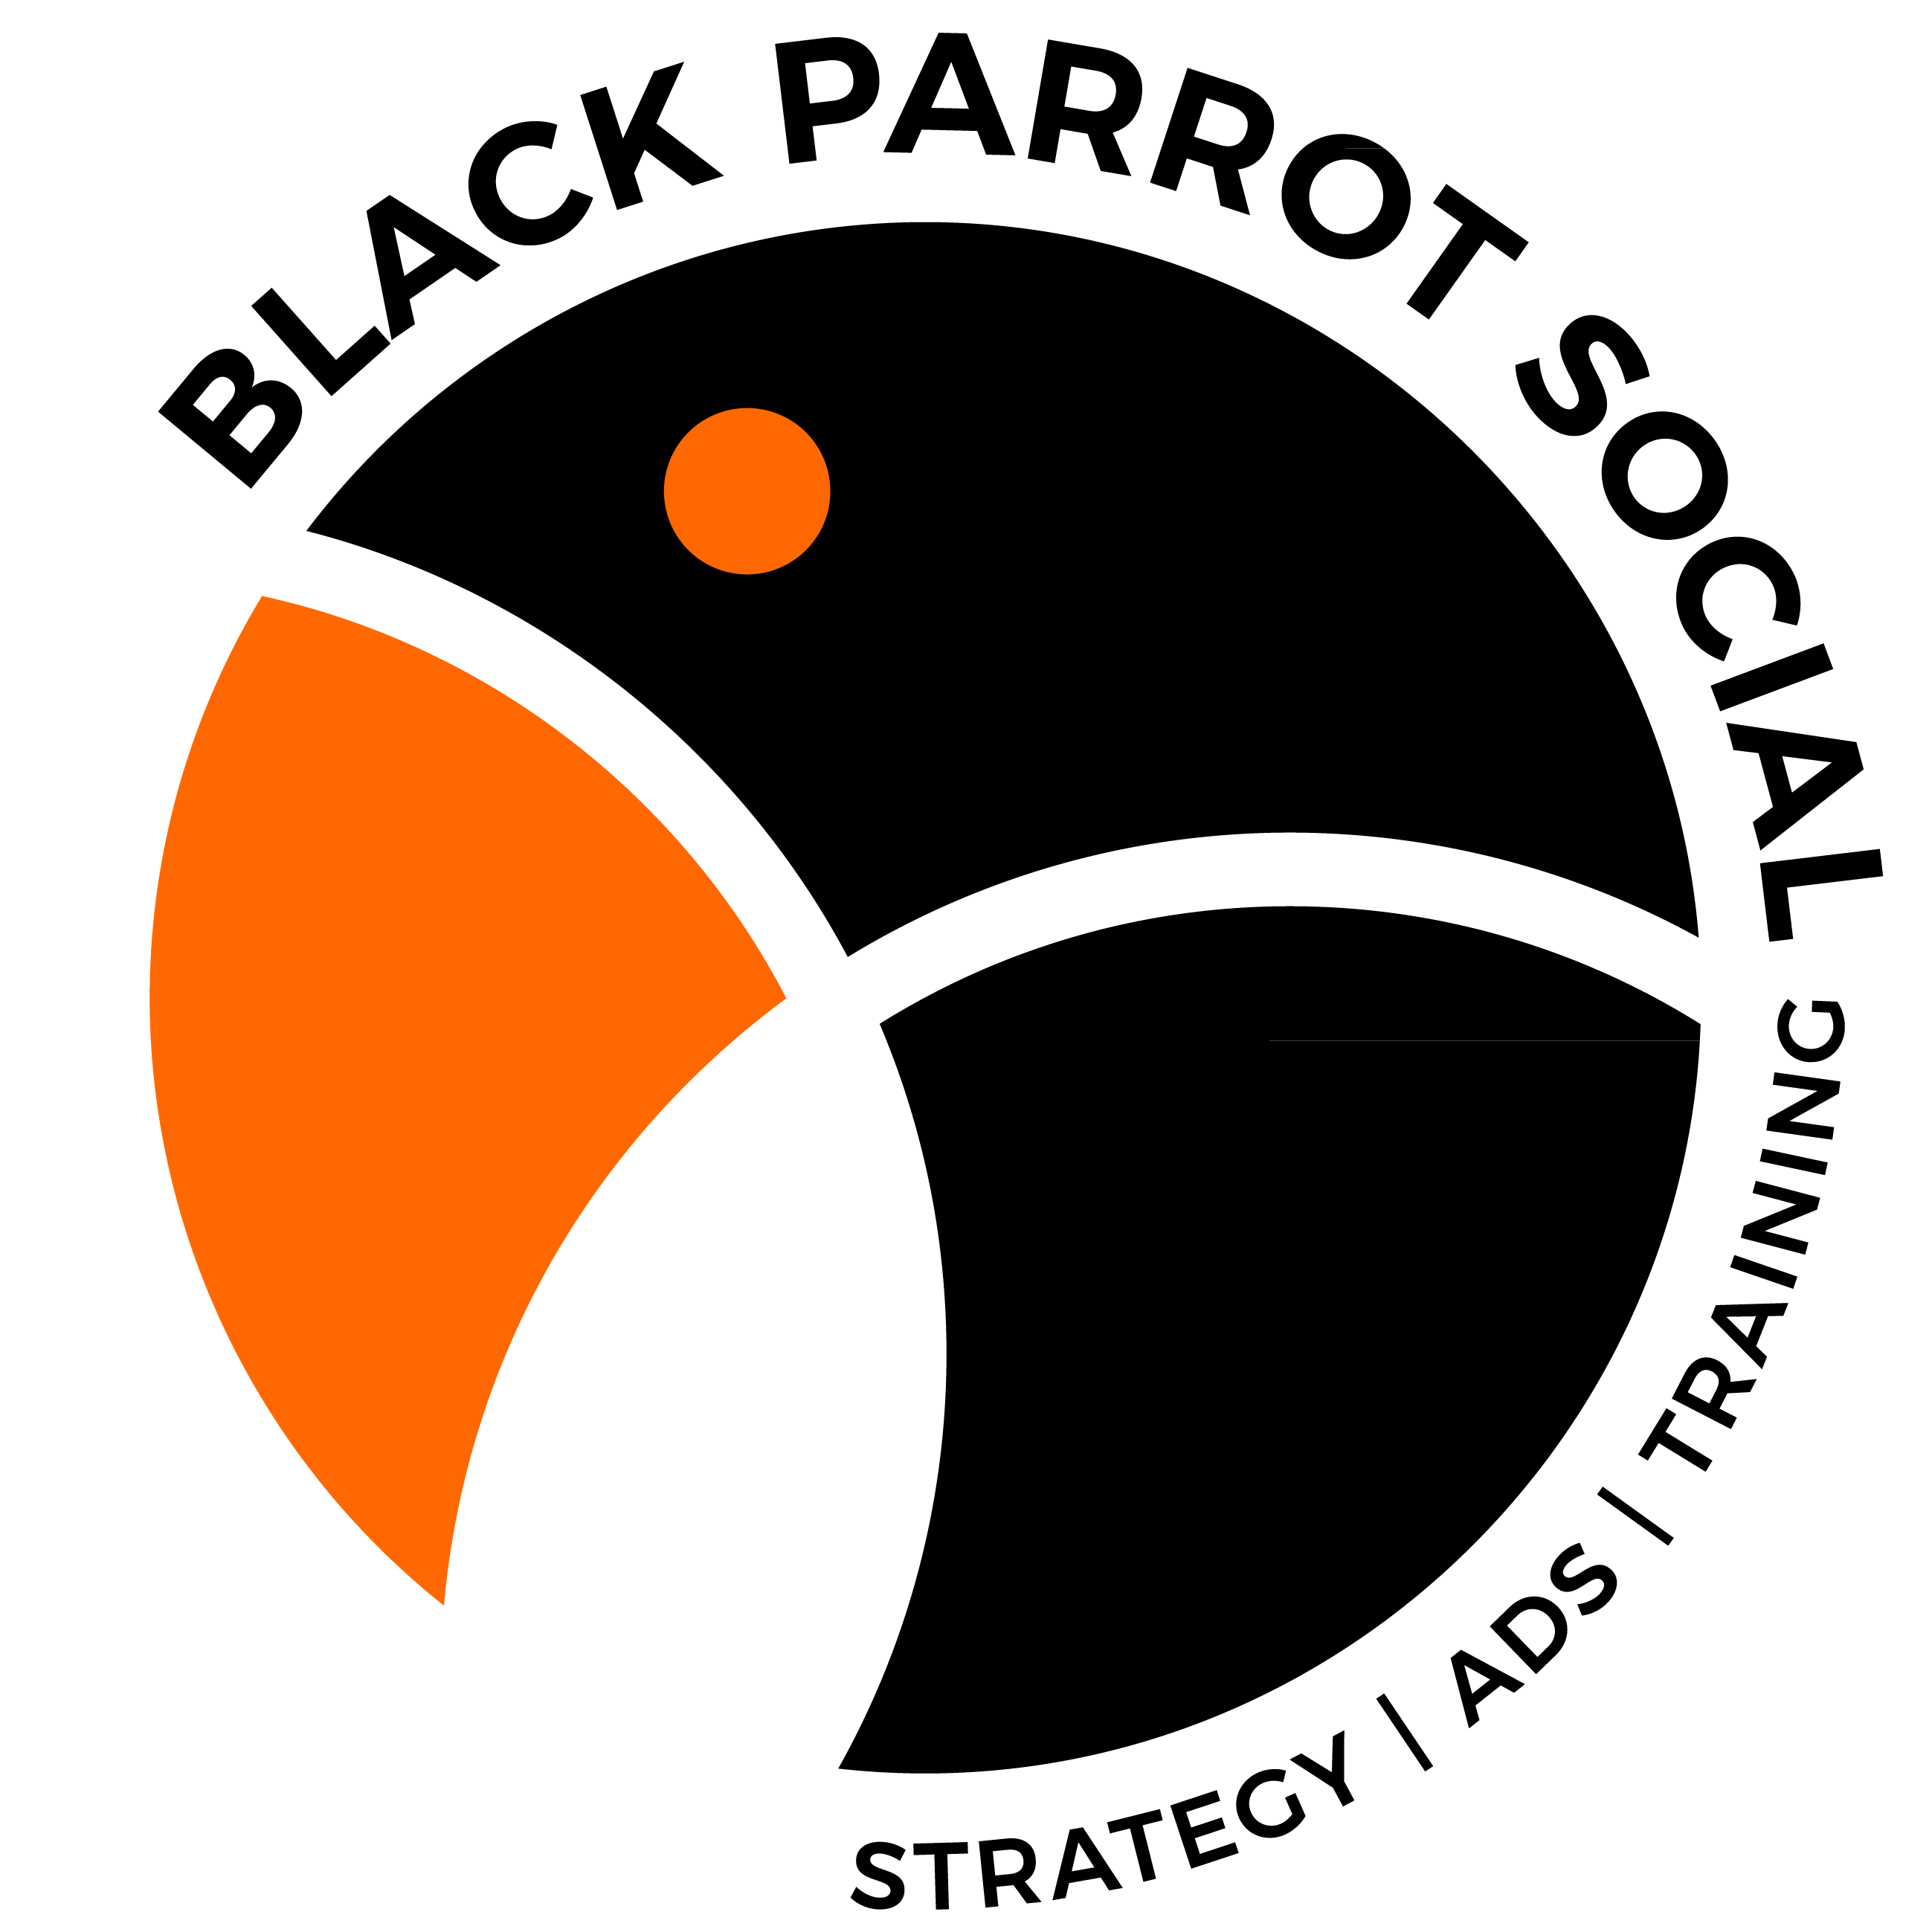 Black and orange logo of parrot